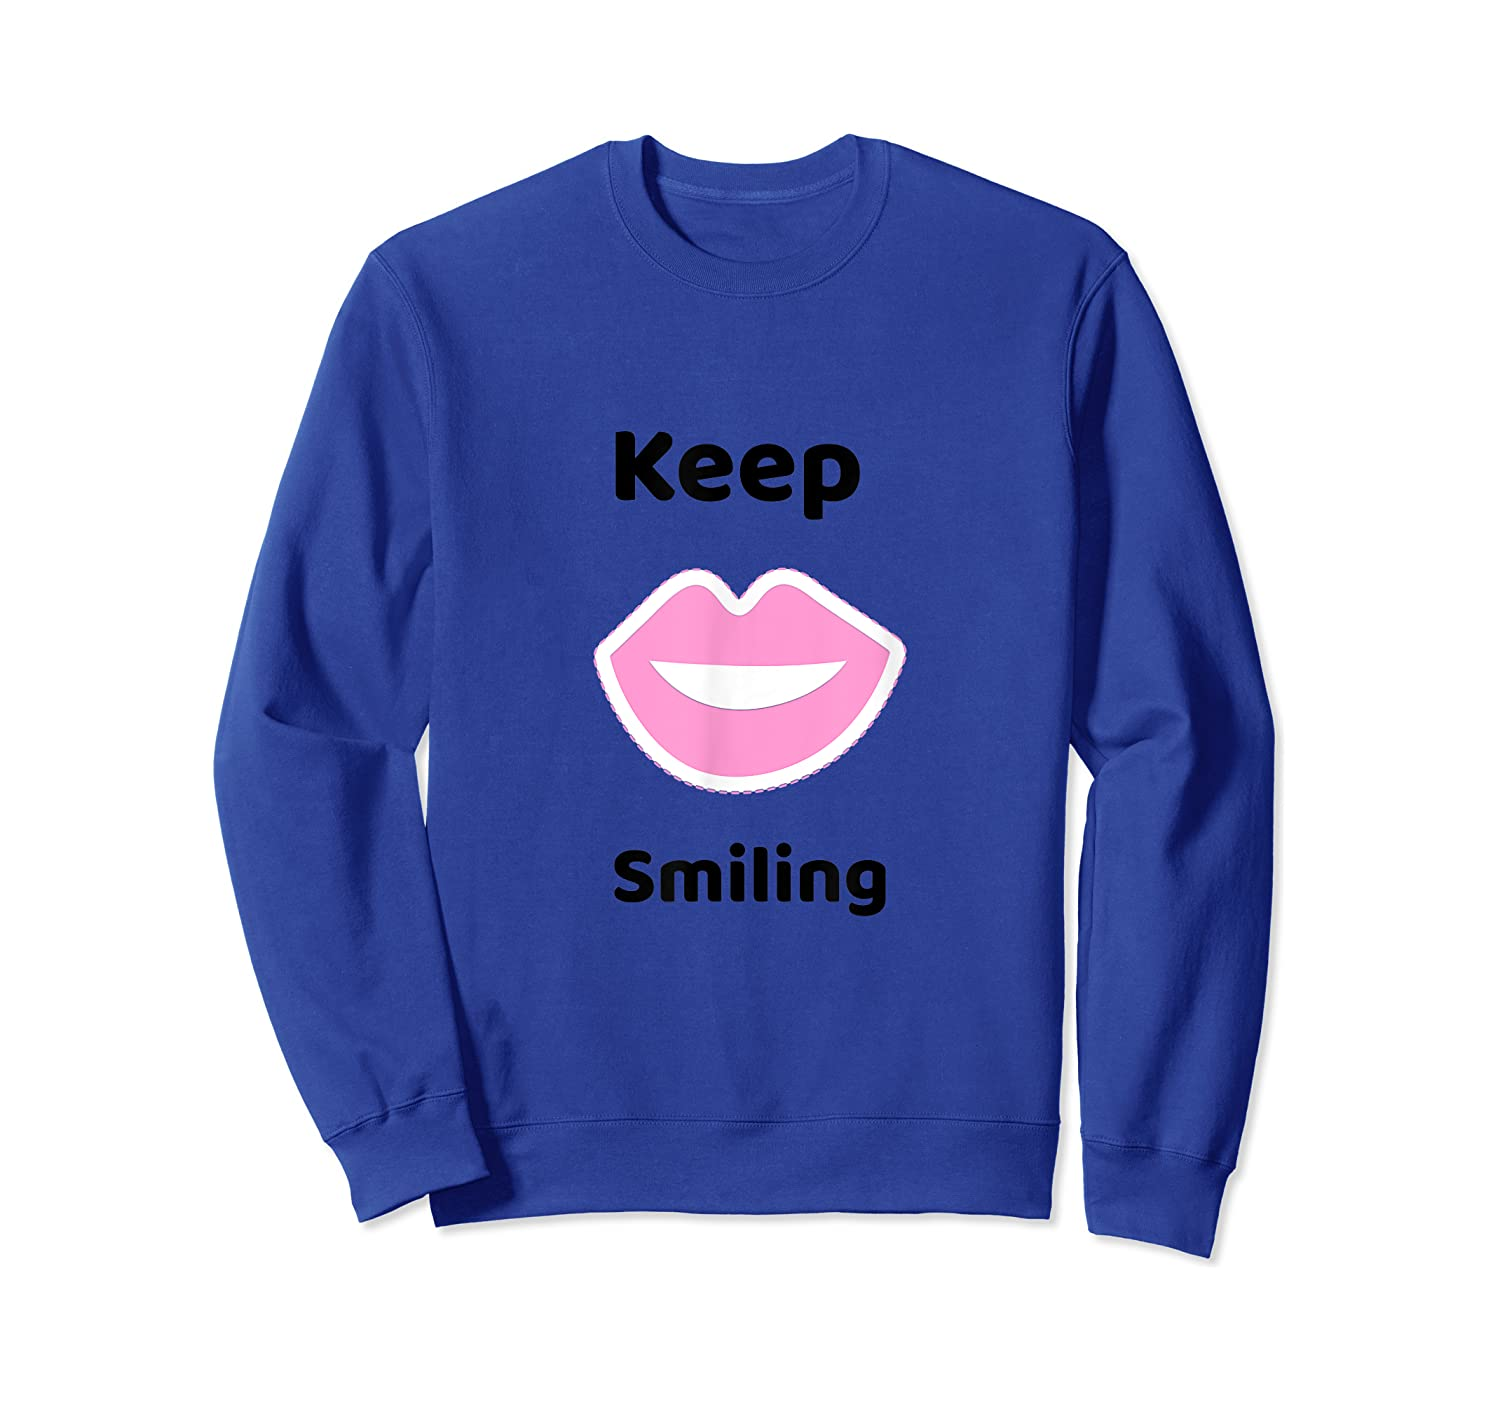 Keep Smiling Positive Thoughts Shirts Crewneck Sweater